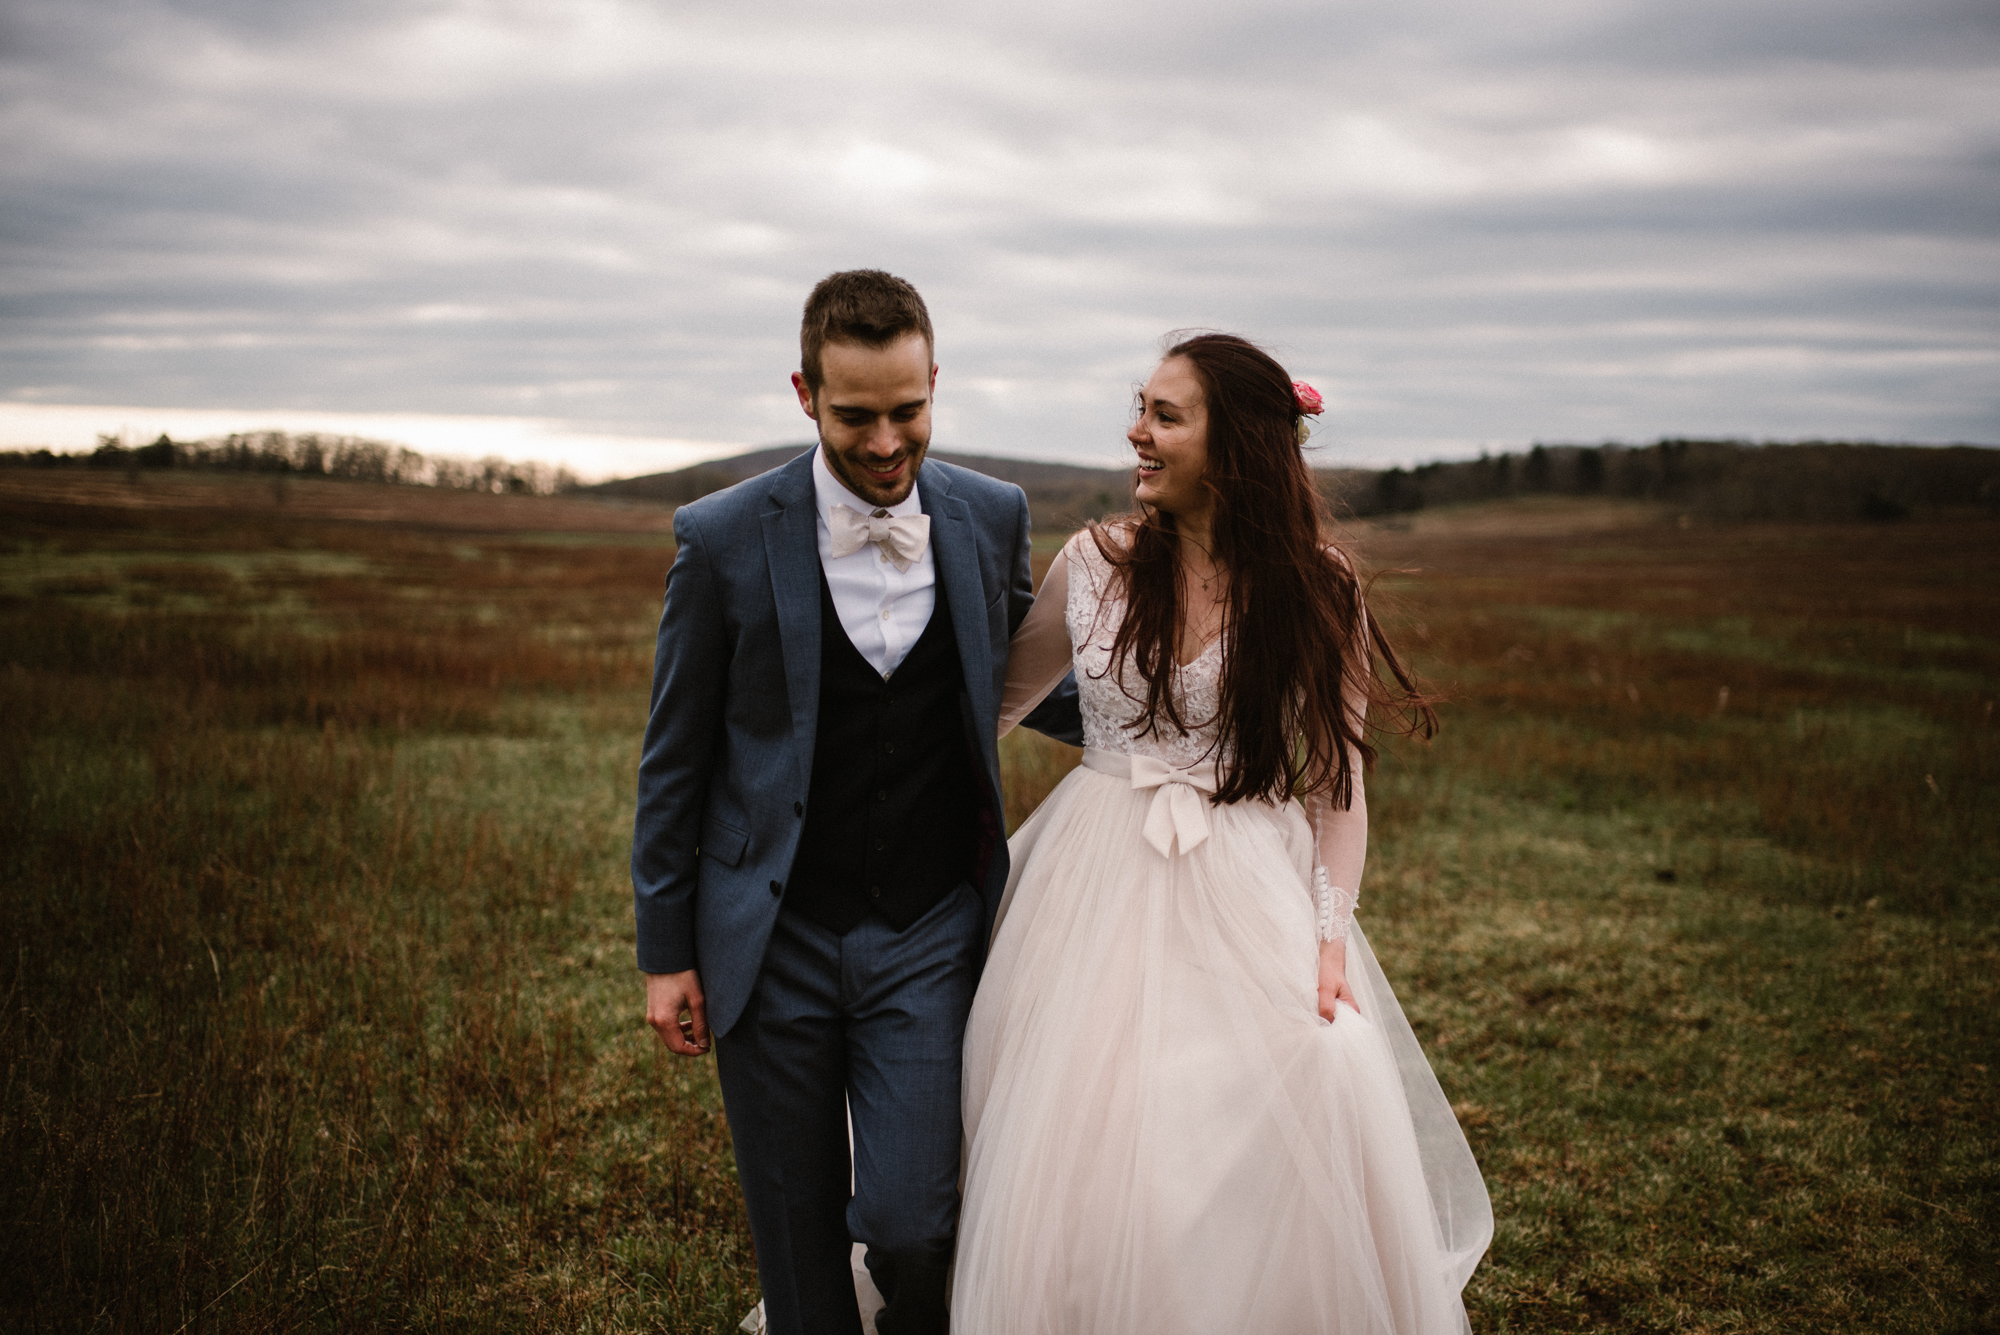 Paula and Andrew - Small Adventurous Wedding in Shenandoah National Park - Blue Ridge Mountain Wedding - White Sails Creative - Mountain Elopement_37.jpg